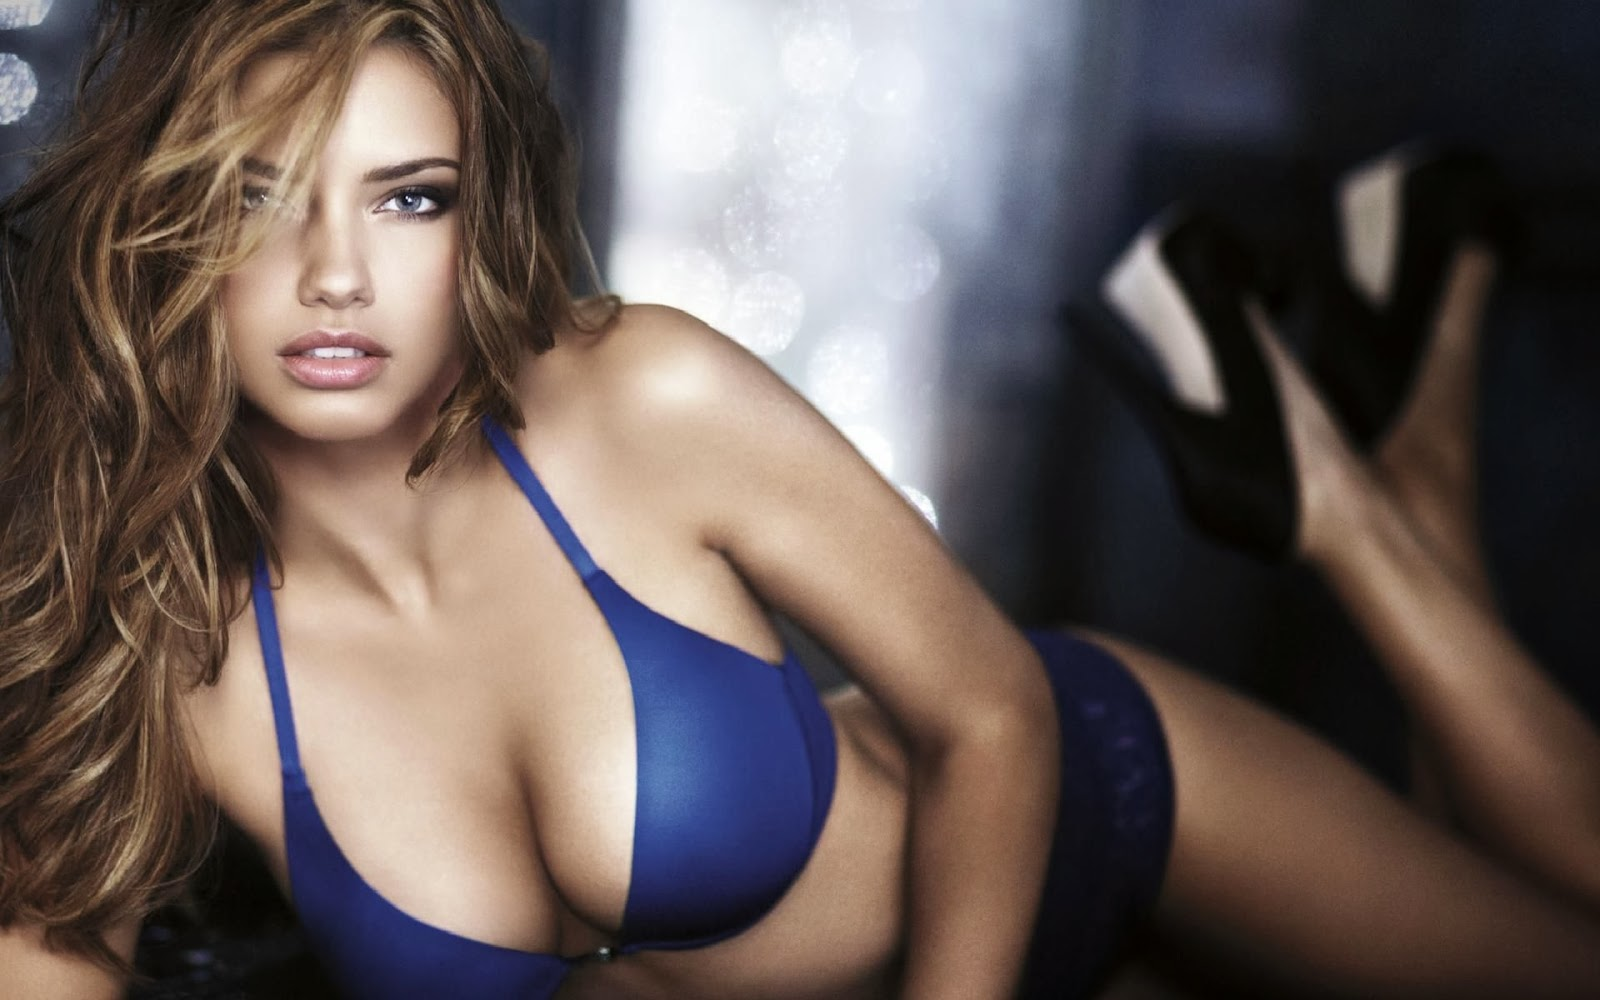 Sexiest Lingerie Pictures 79